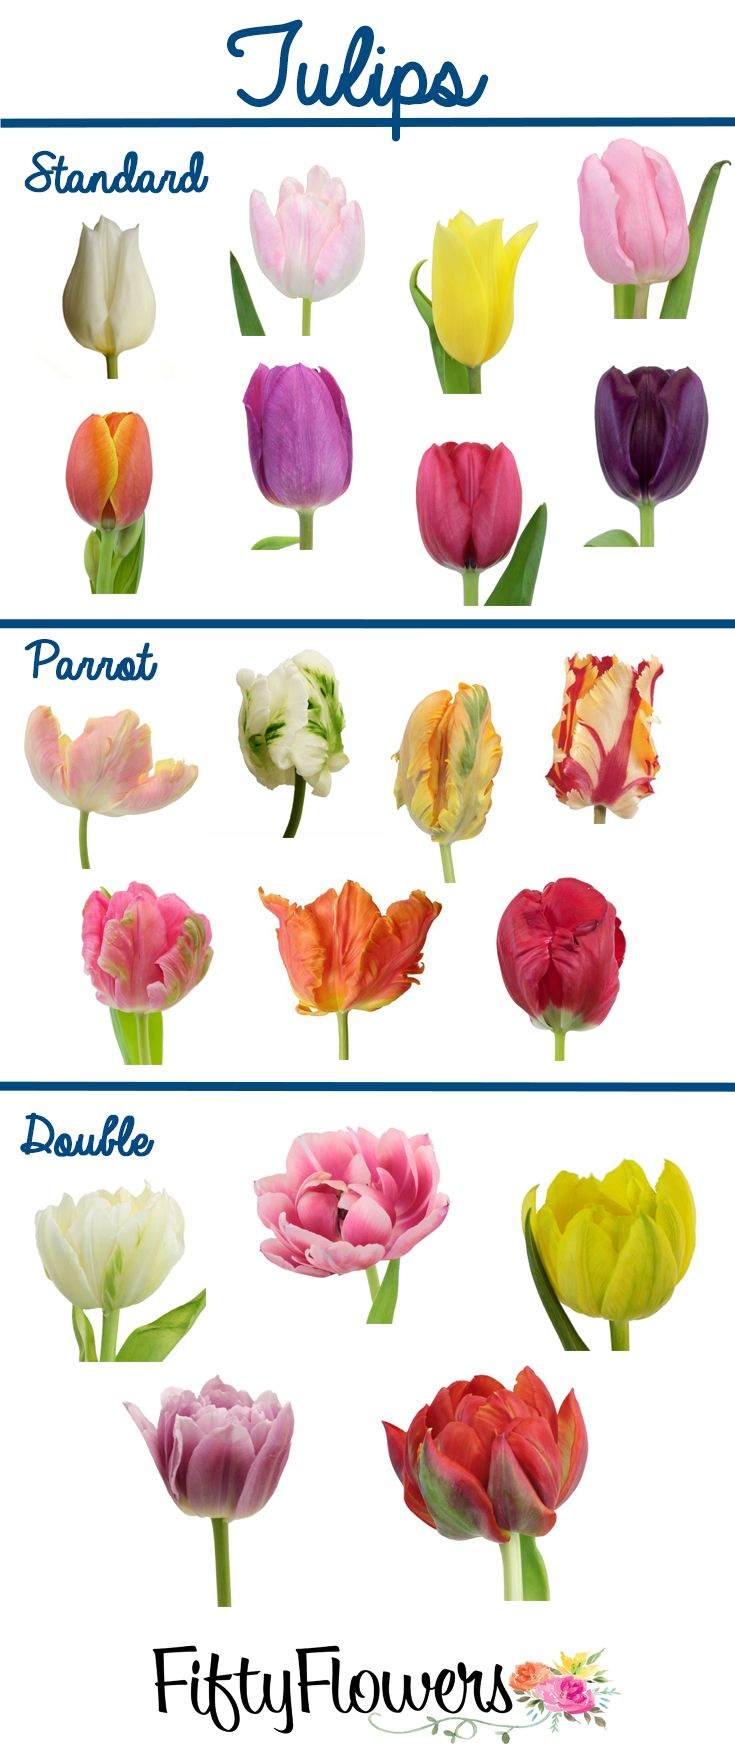 Holiday arrangements wholesale bulk flowers fiftyflowers - Fiftyflowers Com Offers A Wide Variety Of Types And Colors Of Fresh Wholesale Tulips